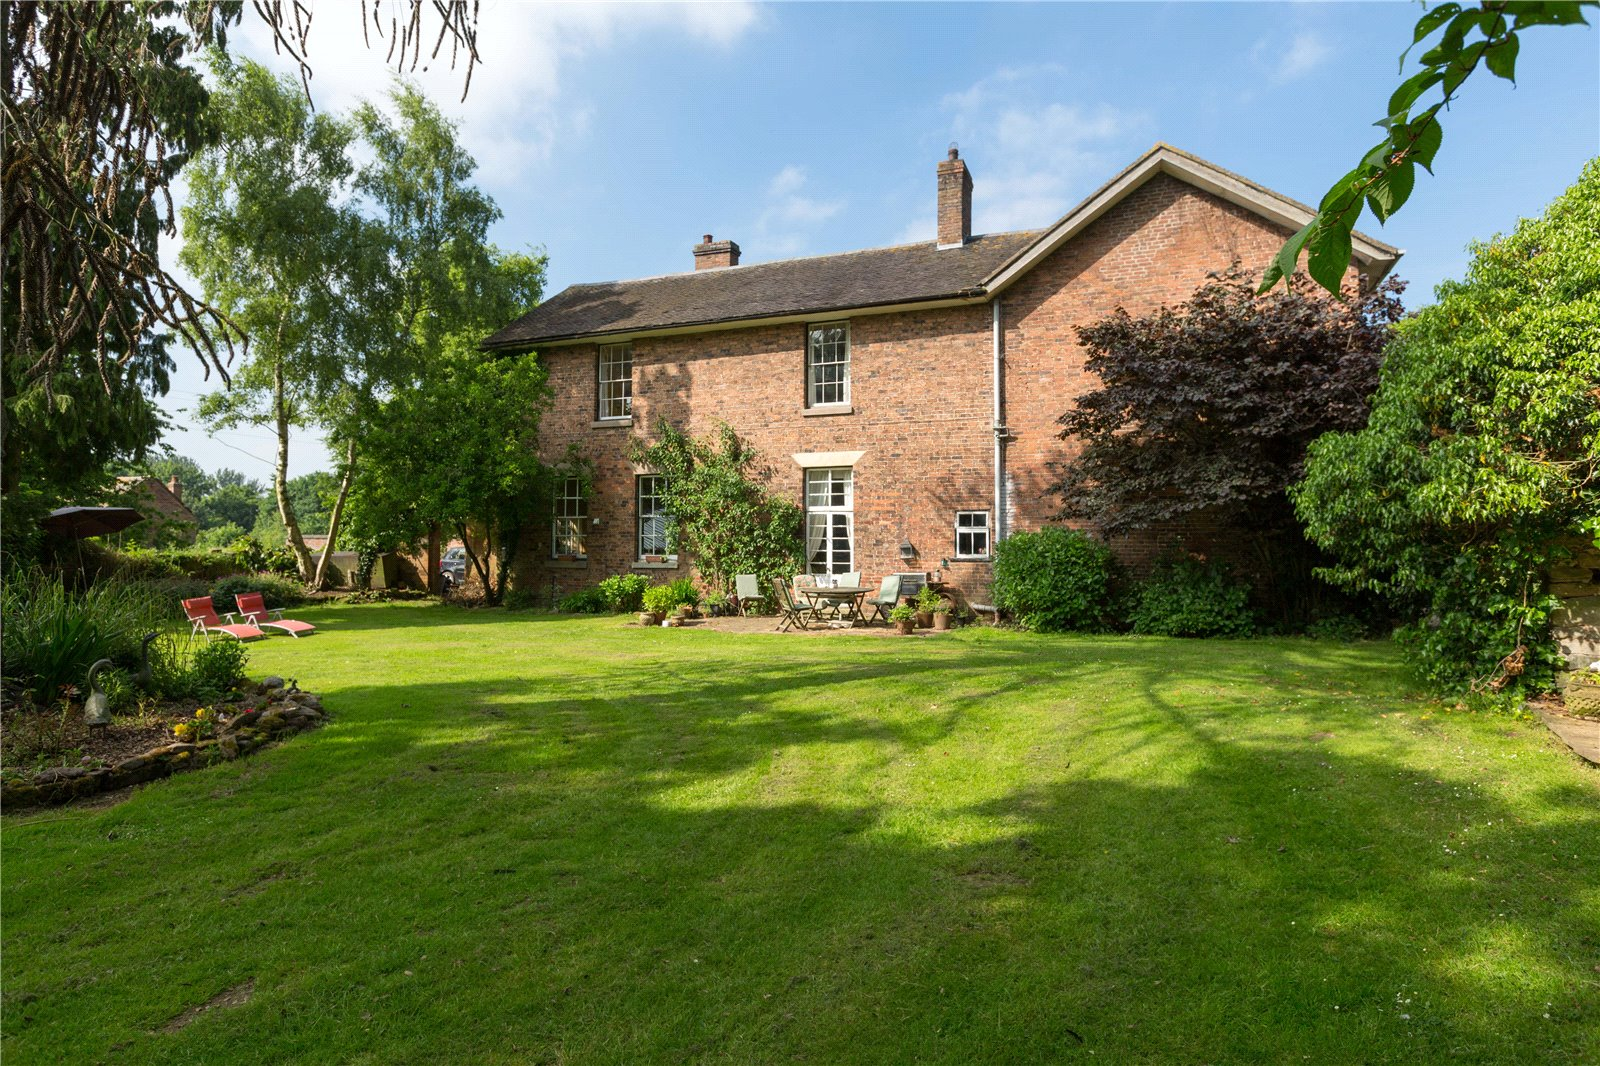 Chatwell Court, Great Chatwell, Newport, Staffordshire, TF10